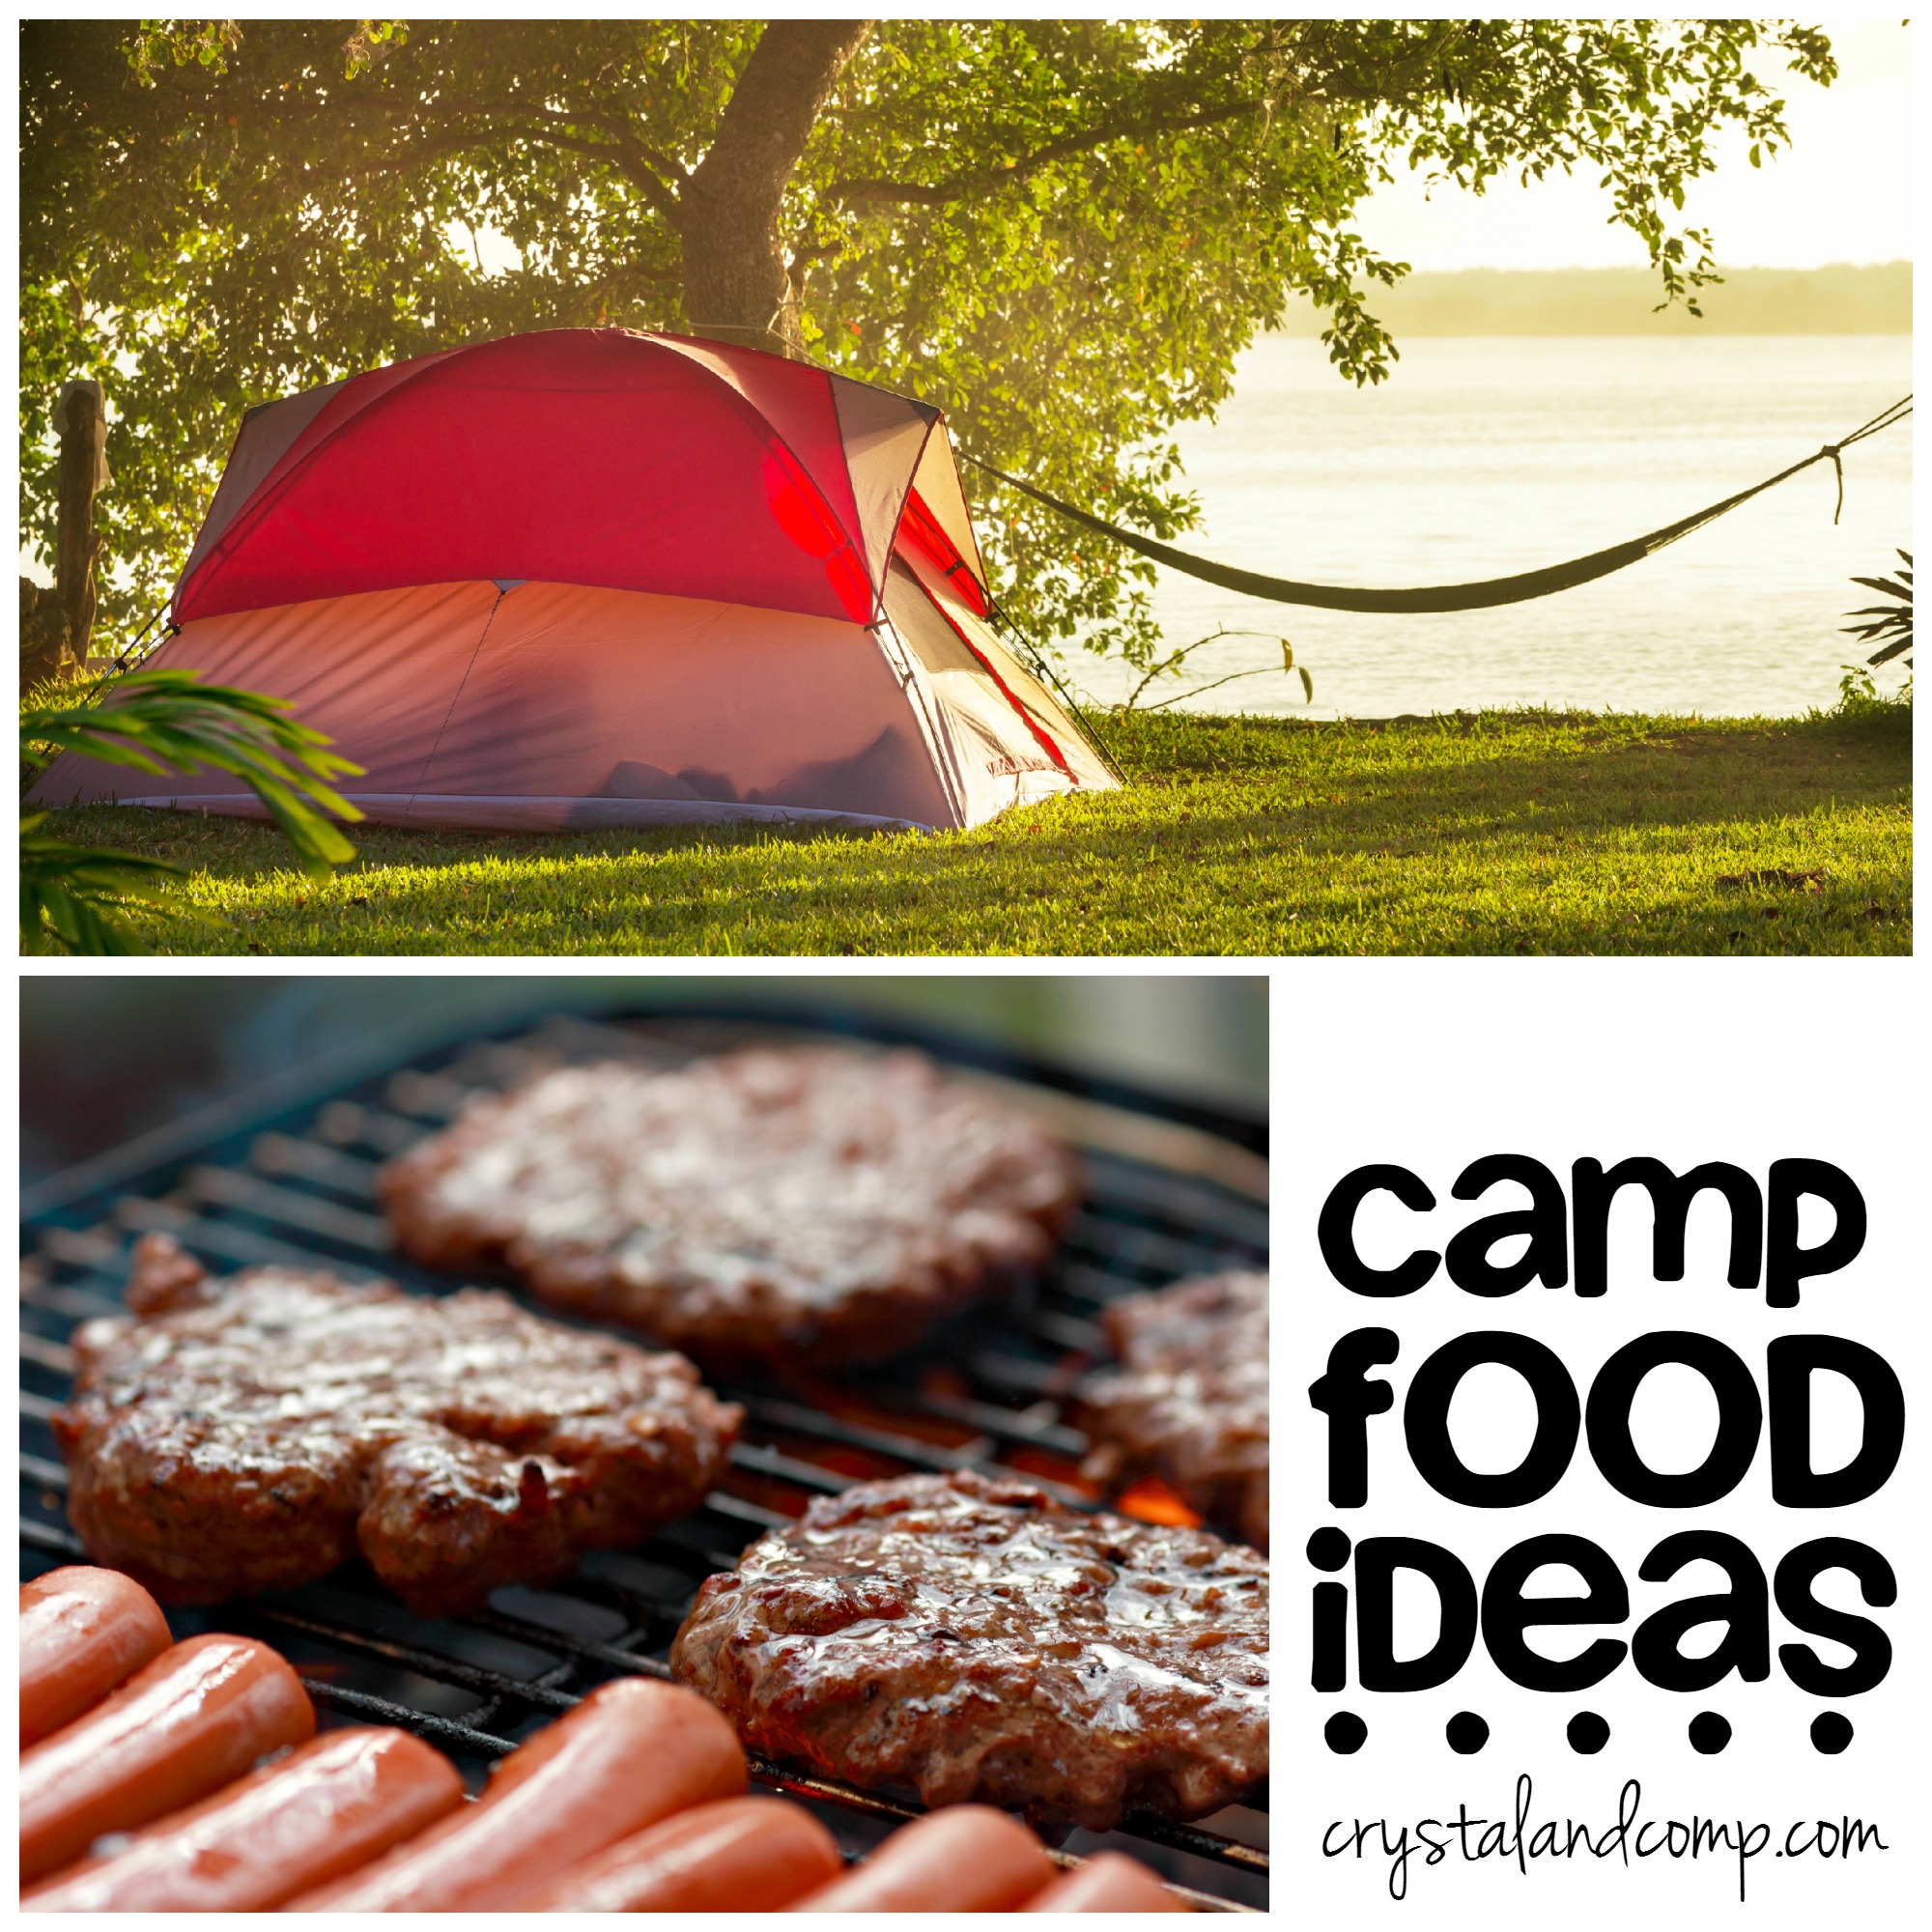 Best 25 Camping Meals Ideas On Pinterest: Camp Food Ideas